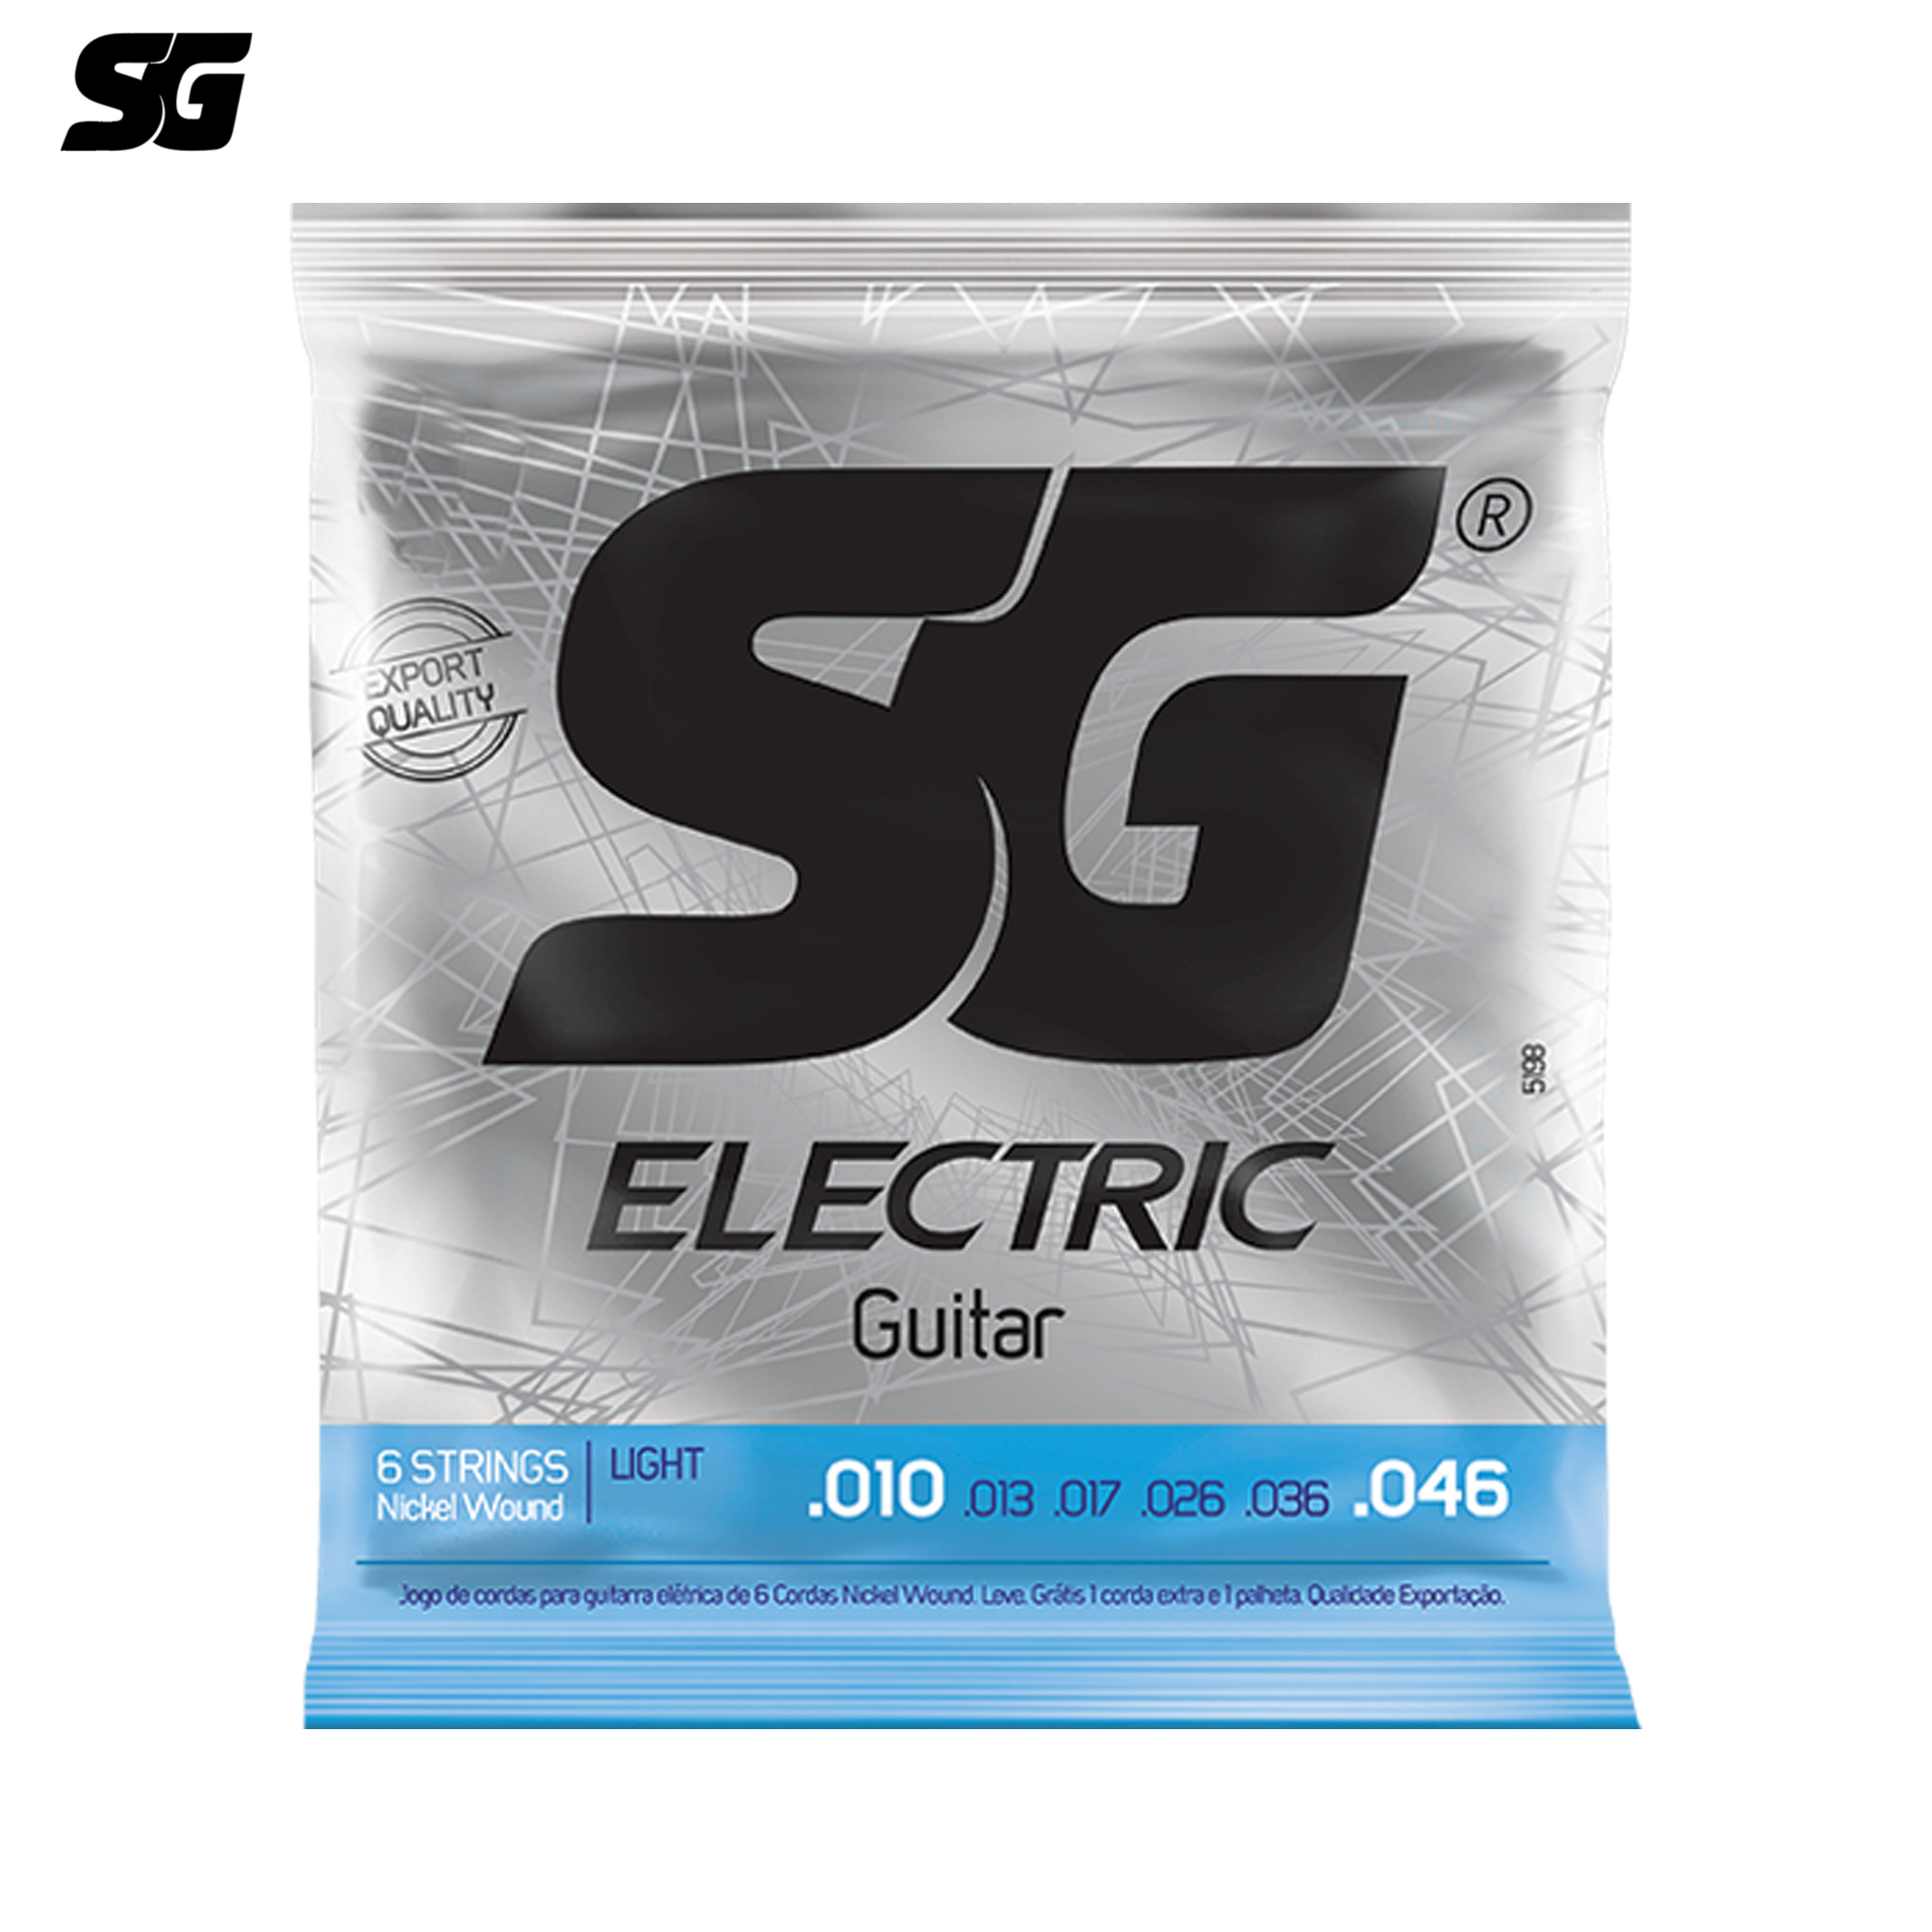 SG Brazil Electric Guitar Strings Steel Hexagonal Core 1 pcs Free Extra E String and Pick 010-046 inch Nickle Wound 5198EX